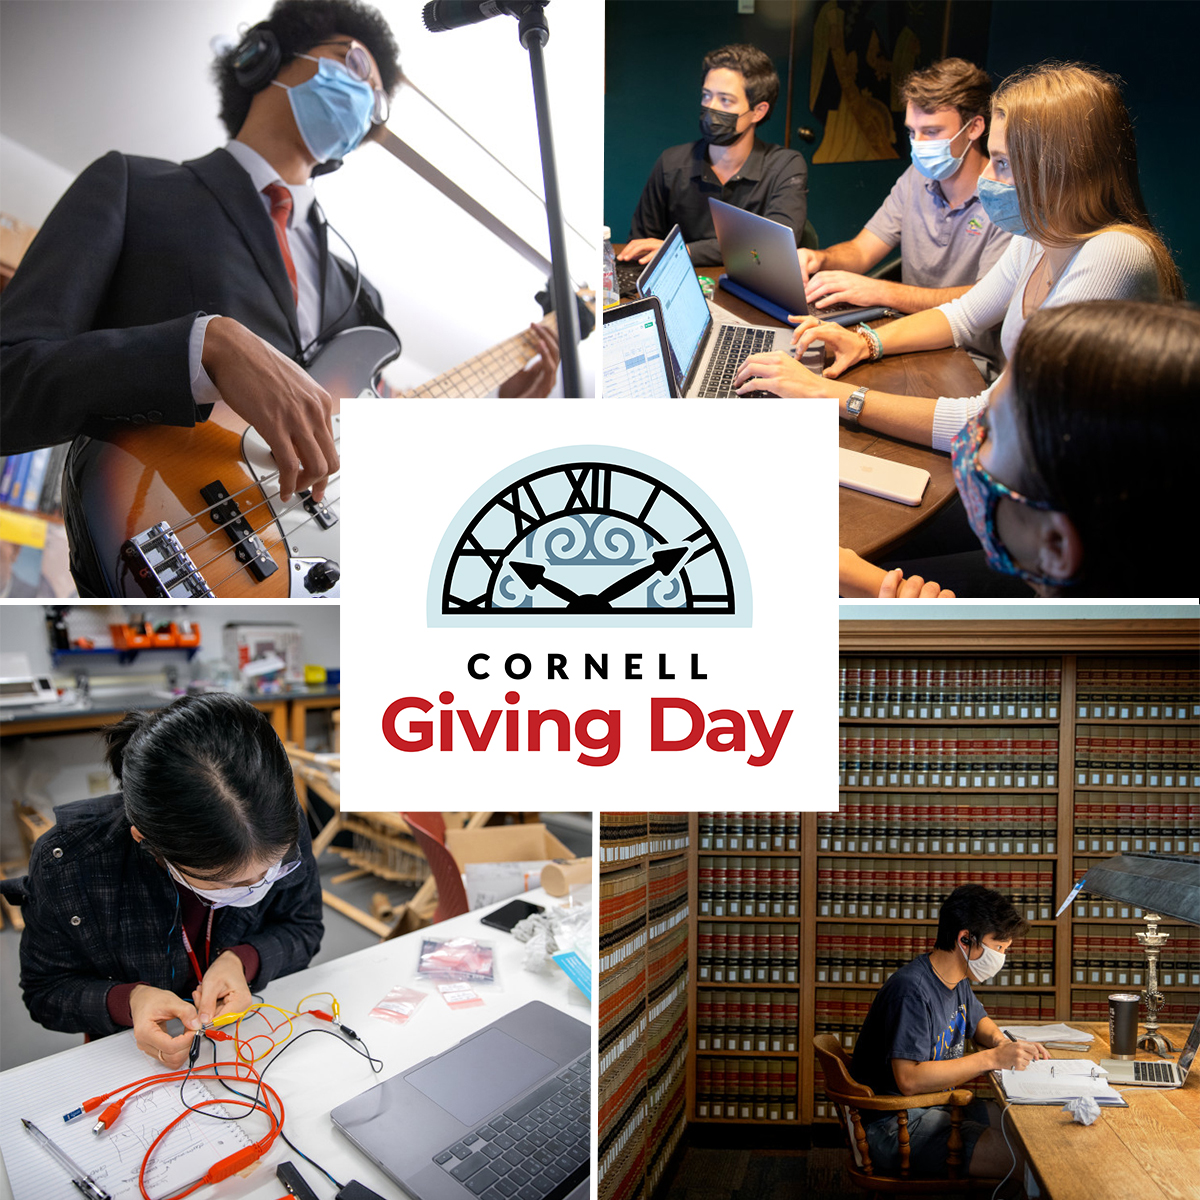 Social Share 1 -- collage of students wearing masks showing Big Red spirit with Cornell Giving Day logo in the center